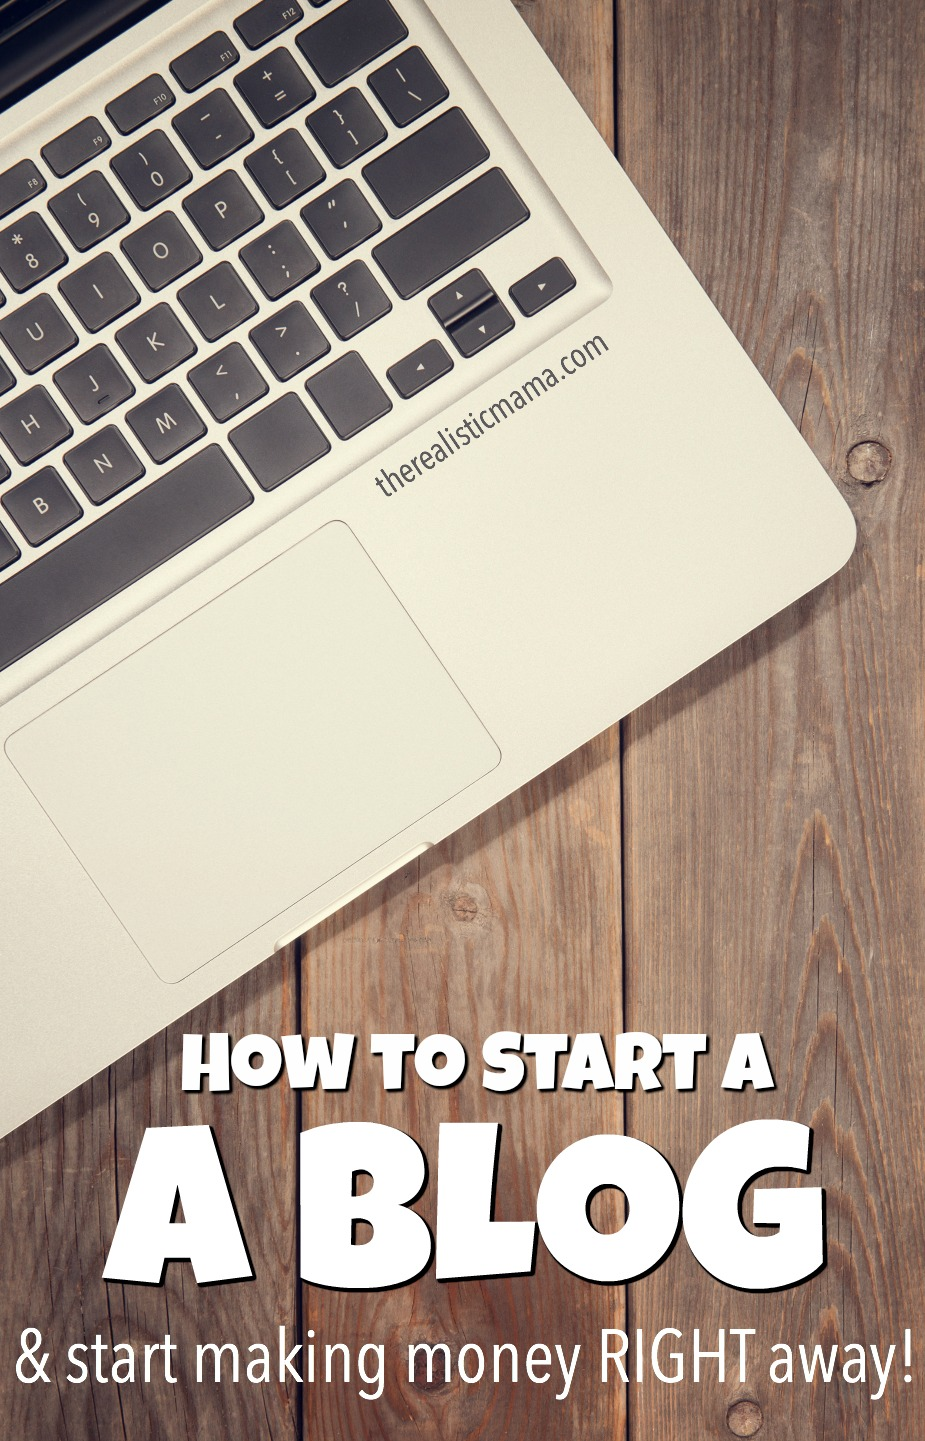 EASY TUTORIAL! How to start a blog AND start making money right away!